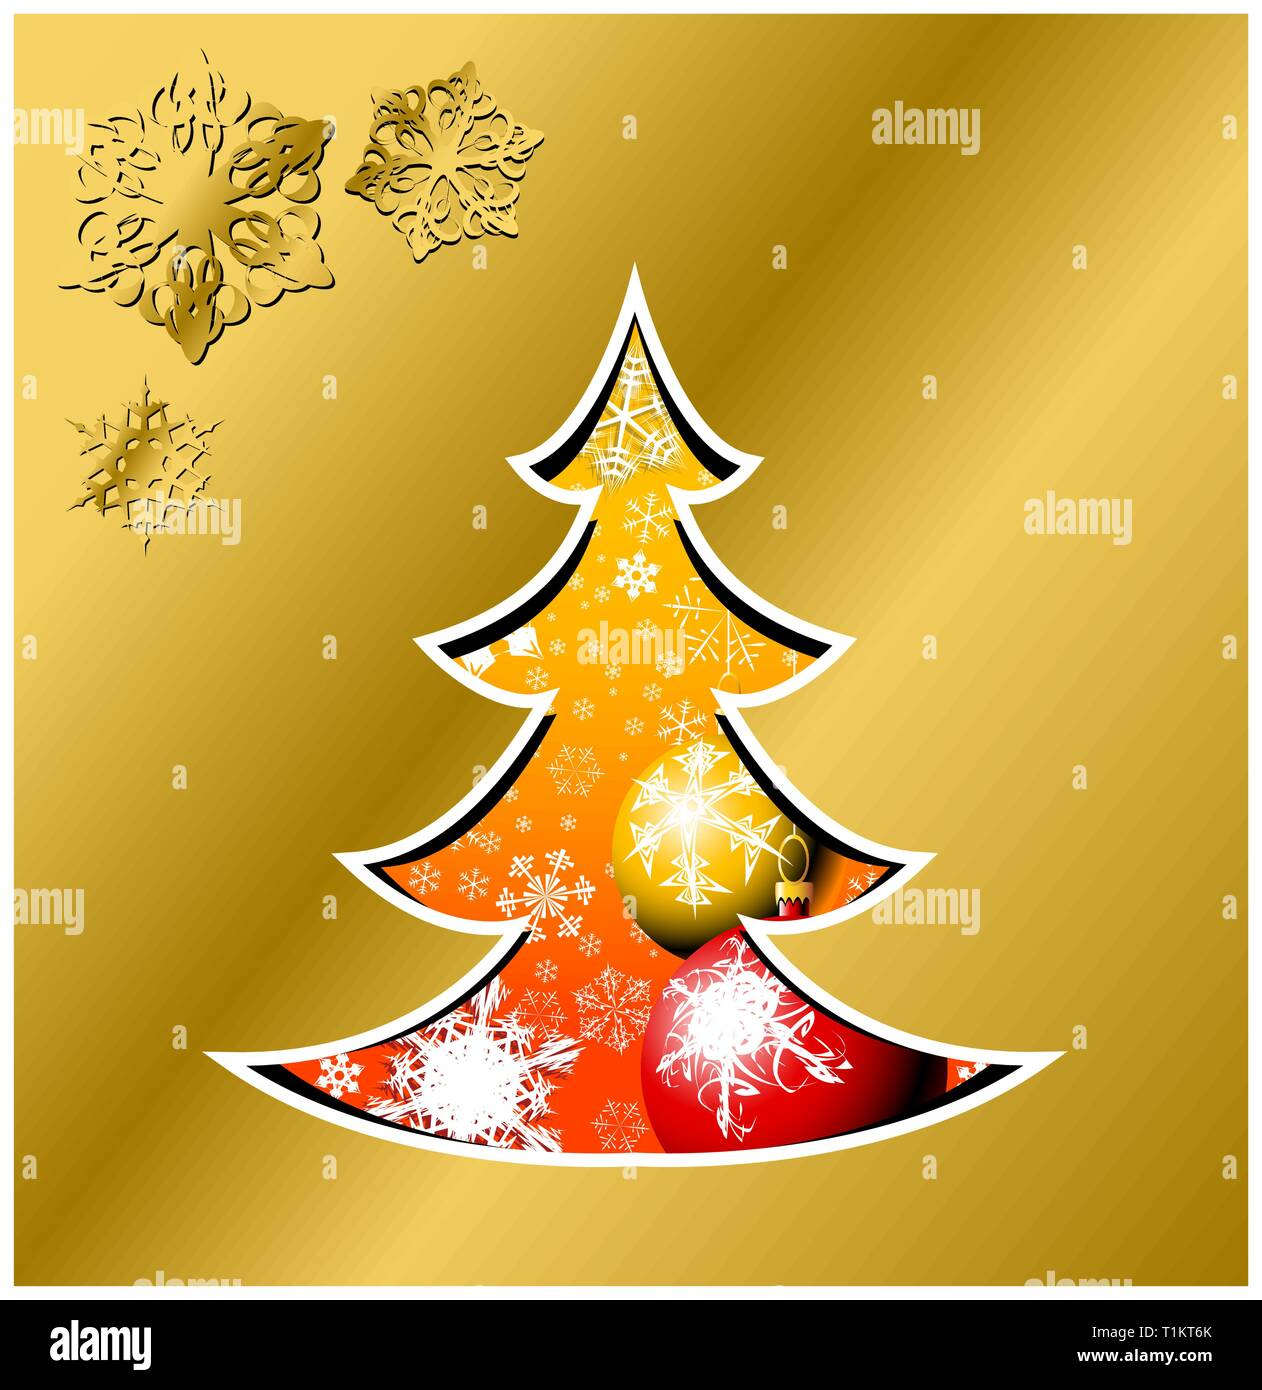 Christmas card - christmas tree with bulbs and snowflakes - Stock Vector